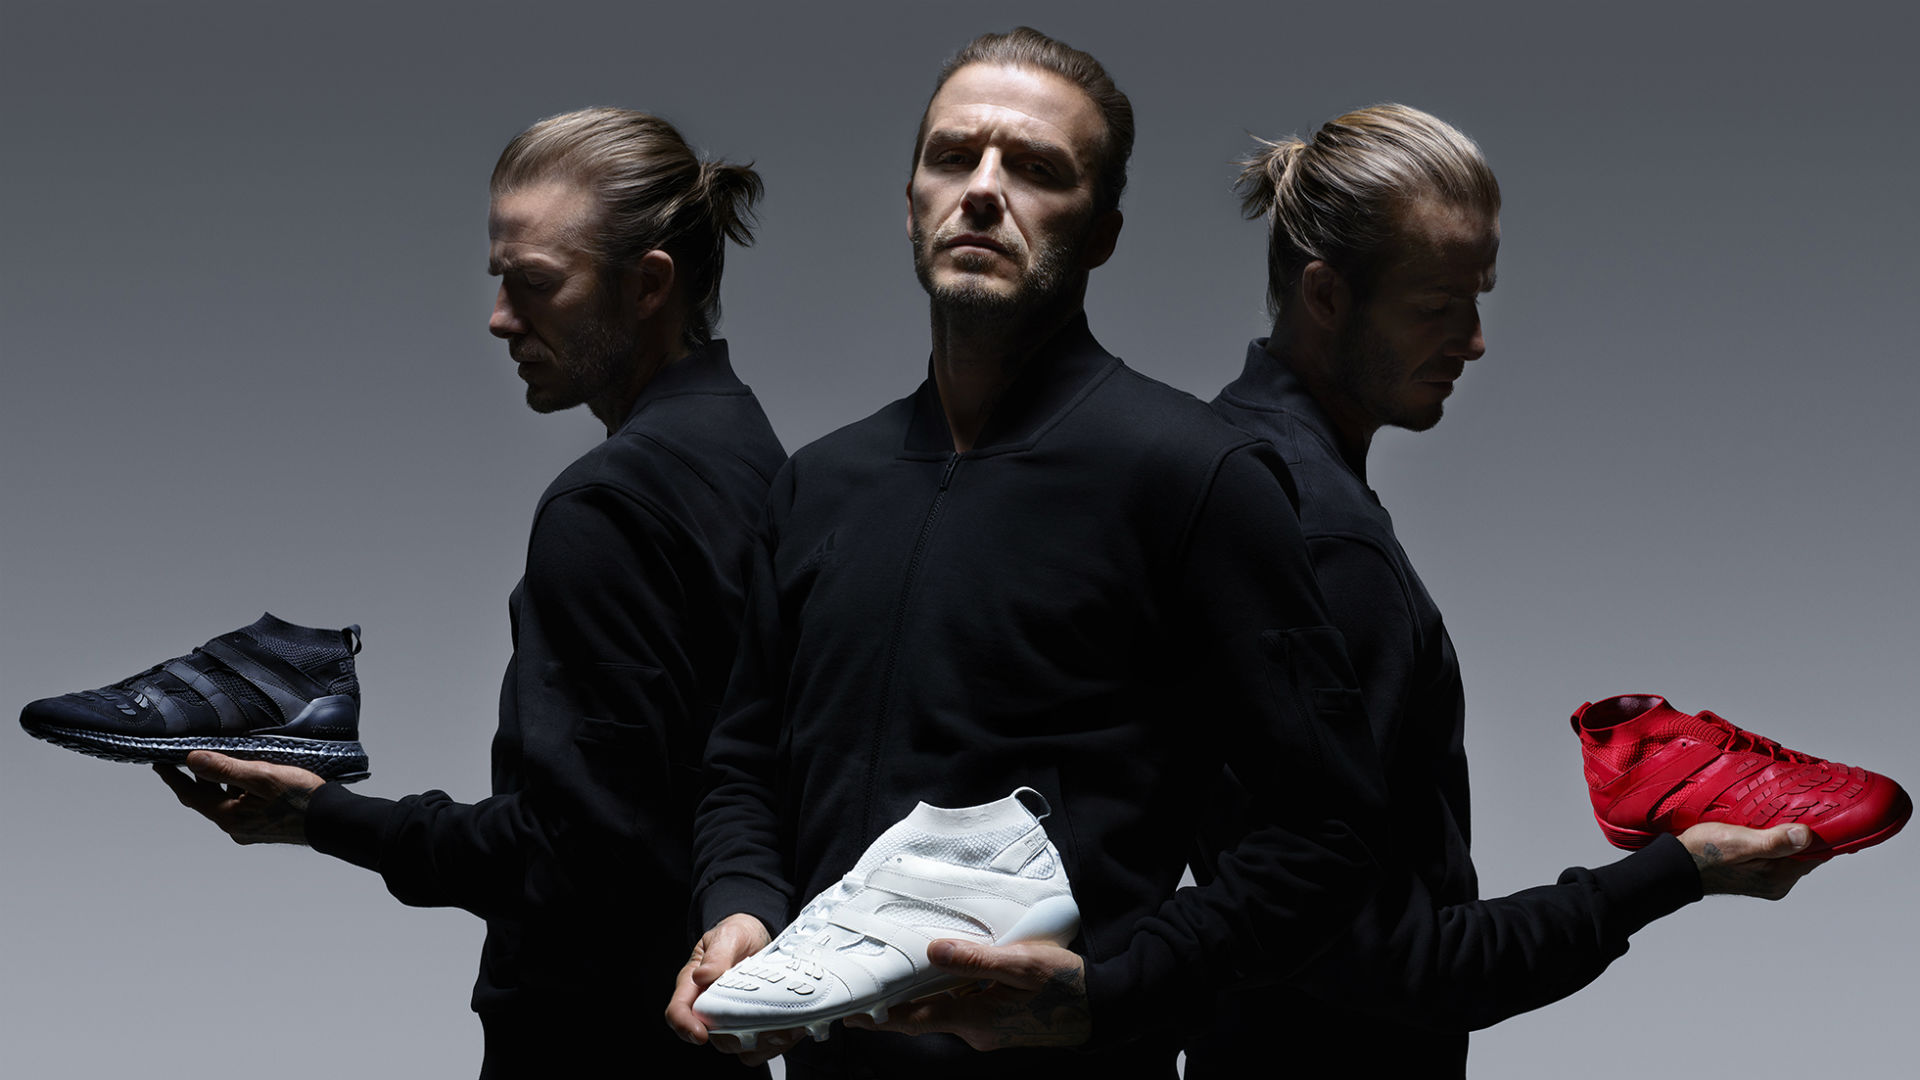 Adidas David Beckham Capsule Collection: Former Man Utd star launches new footwear collection